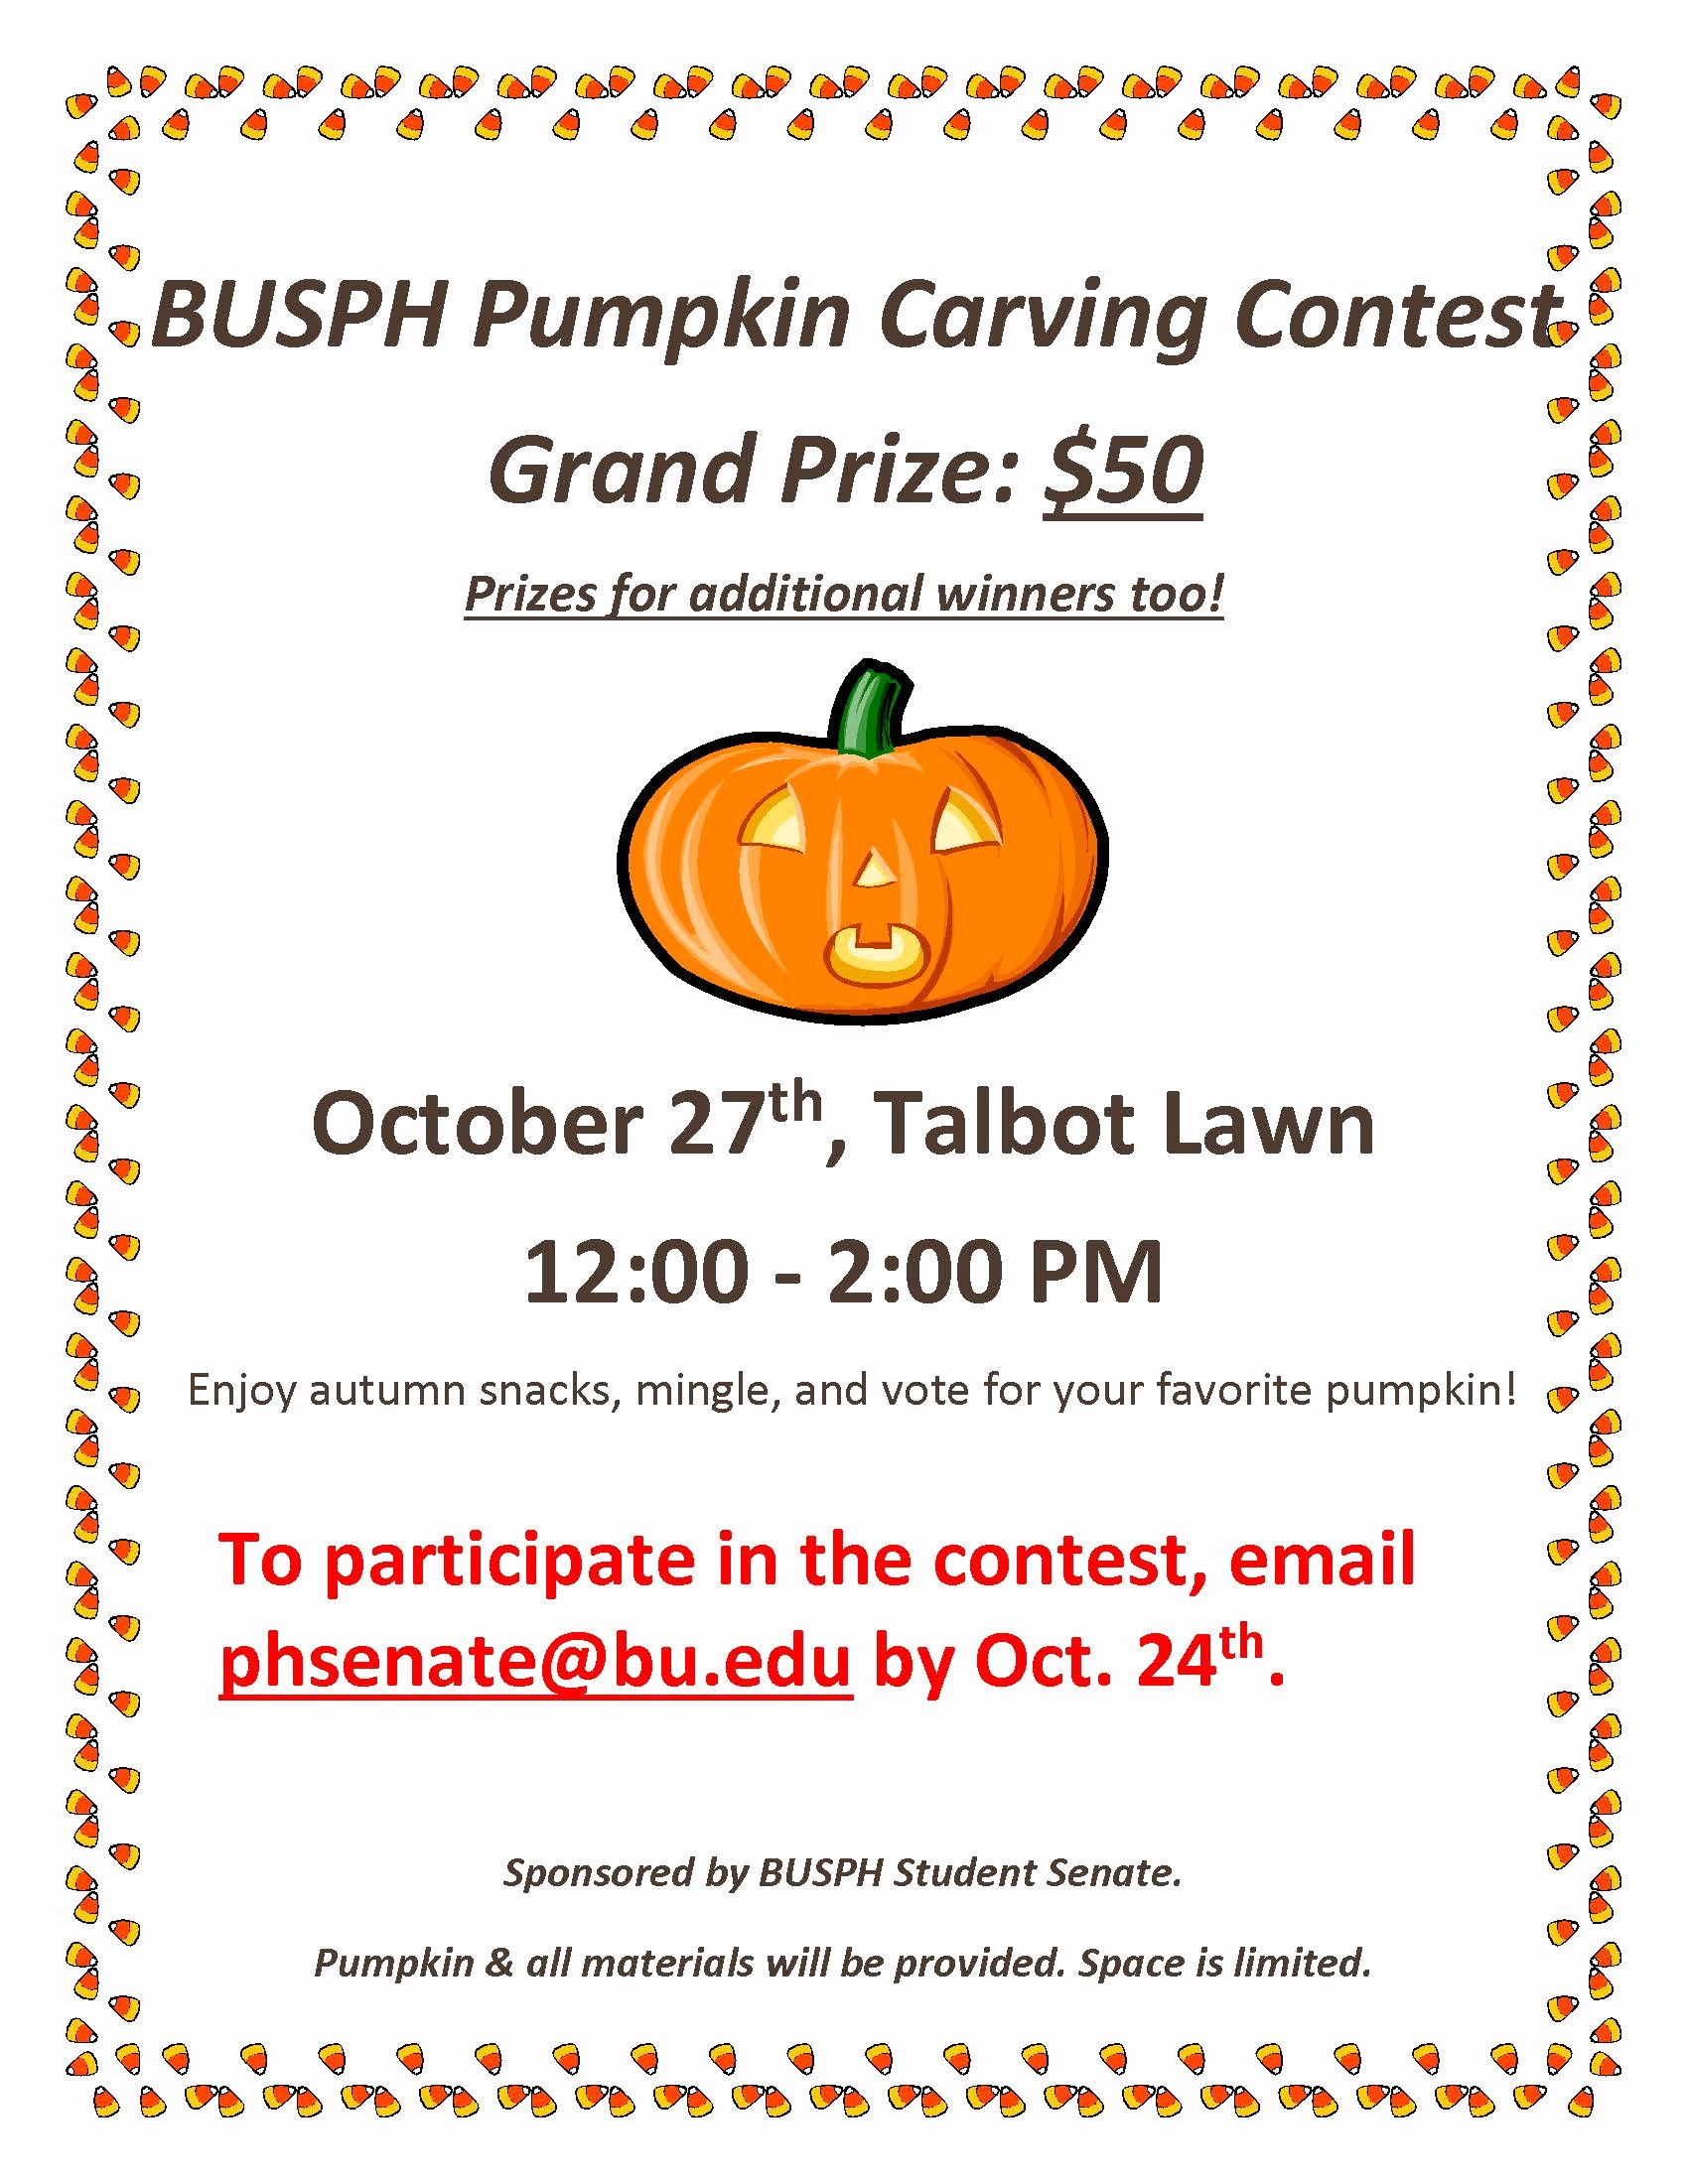 Pumpkin Carving Contest Flyer Template Inspirational Busph Pumpkin Carving Contest – Oct 27th On Talbot Green